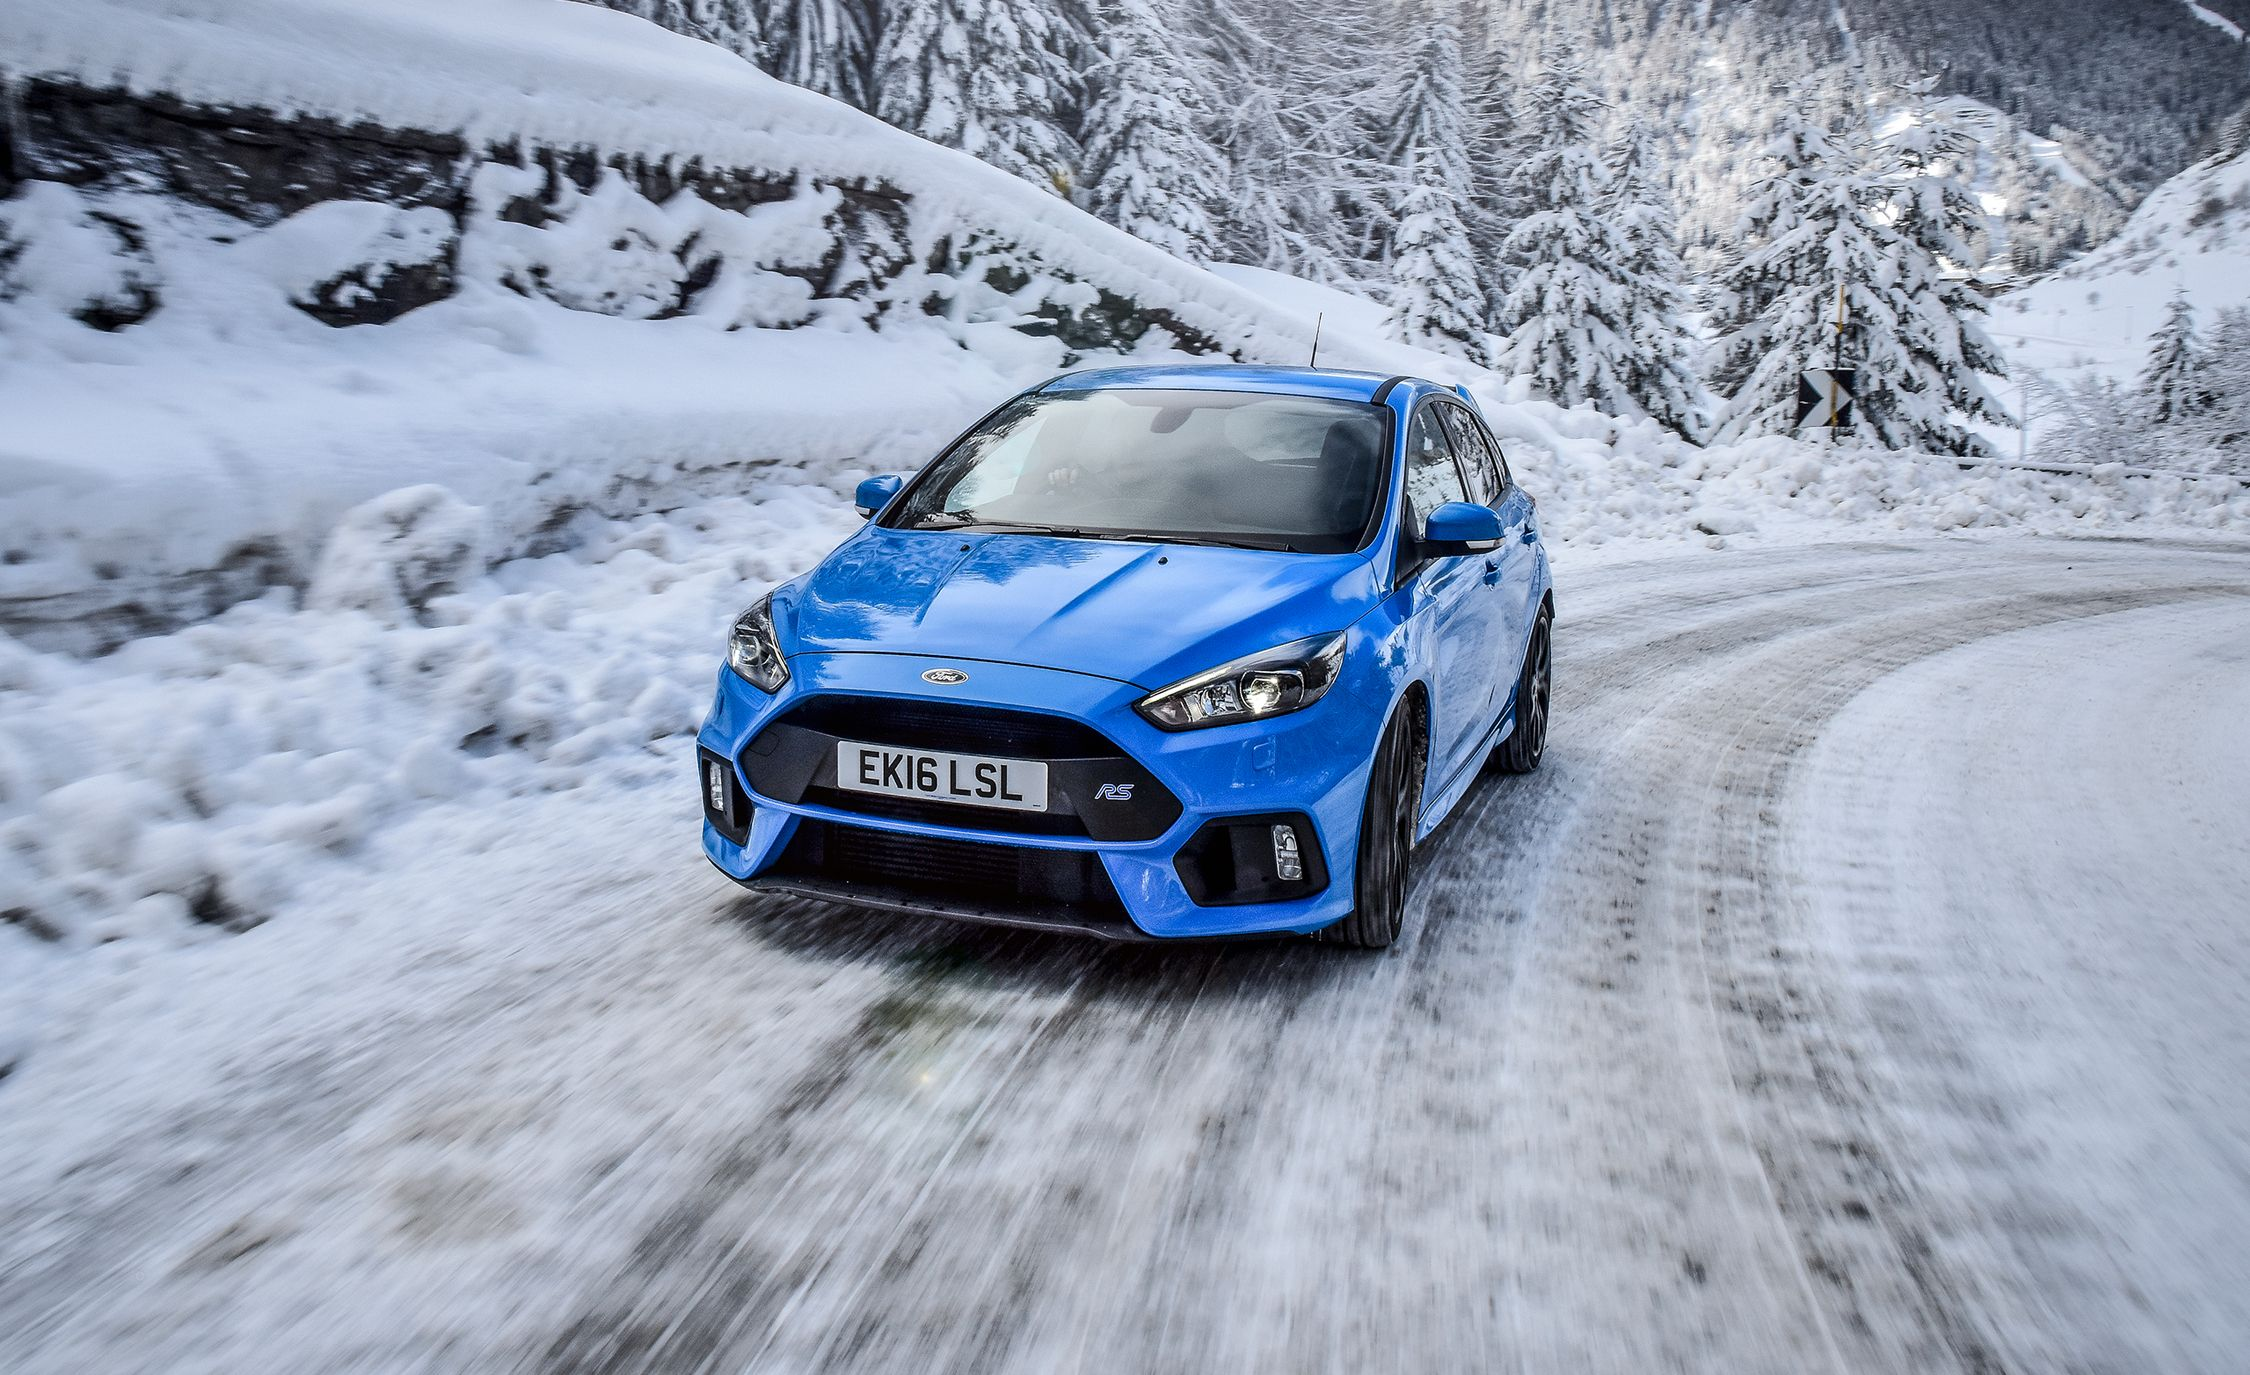 2017 Ford Focus RS Mountune: The Go-Faster RS